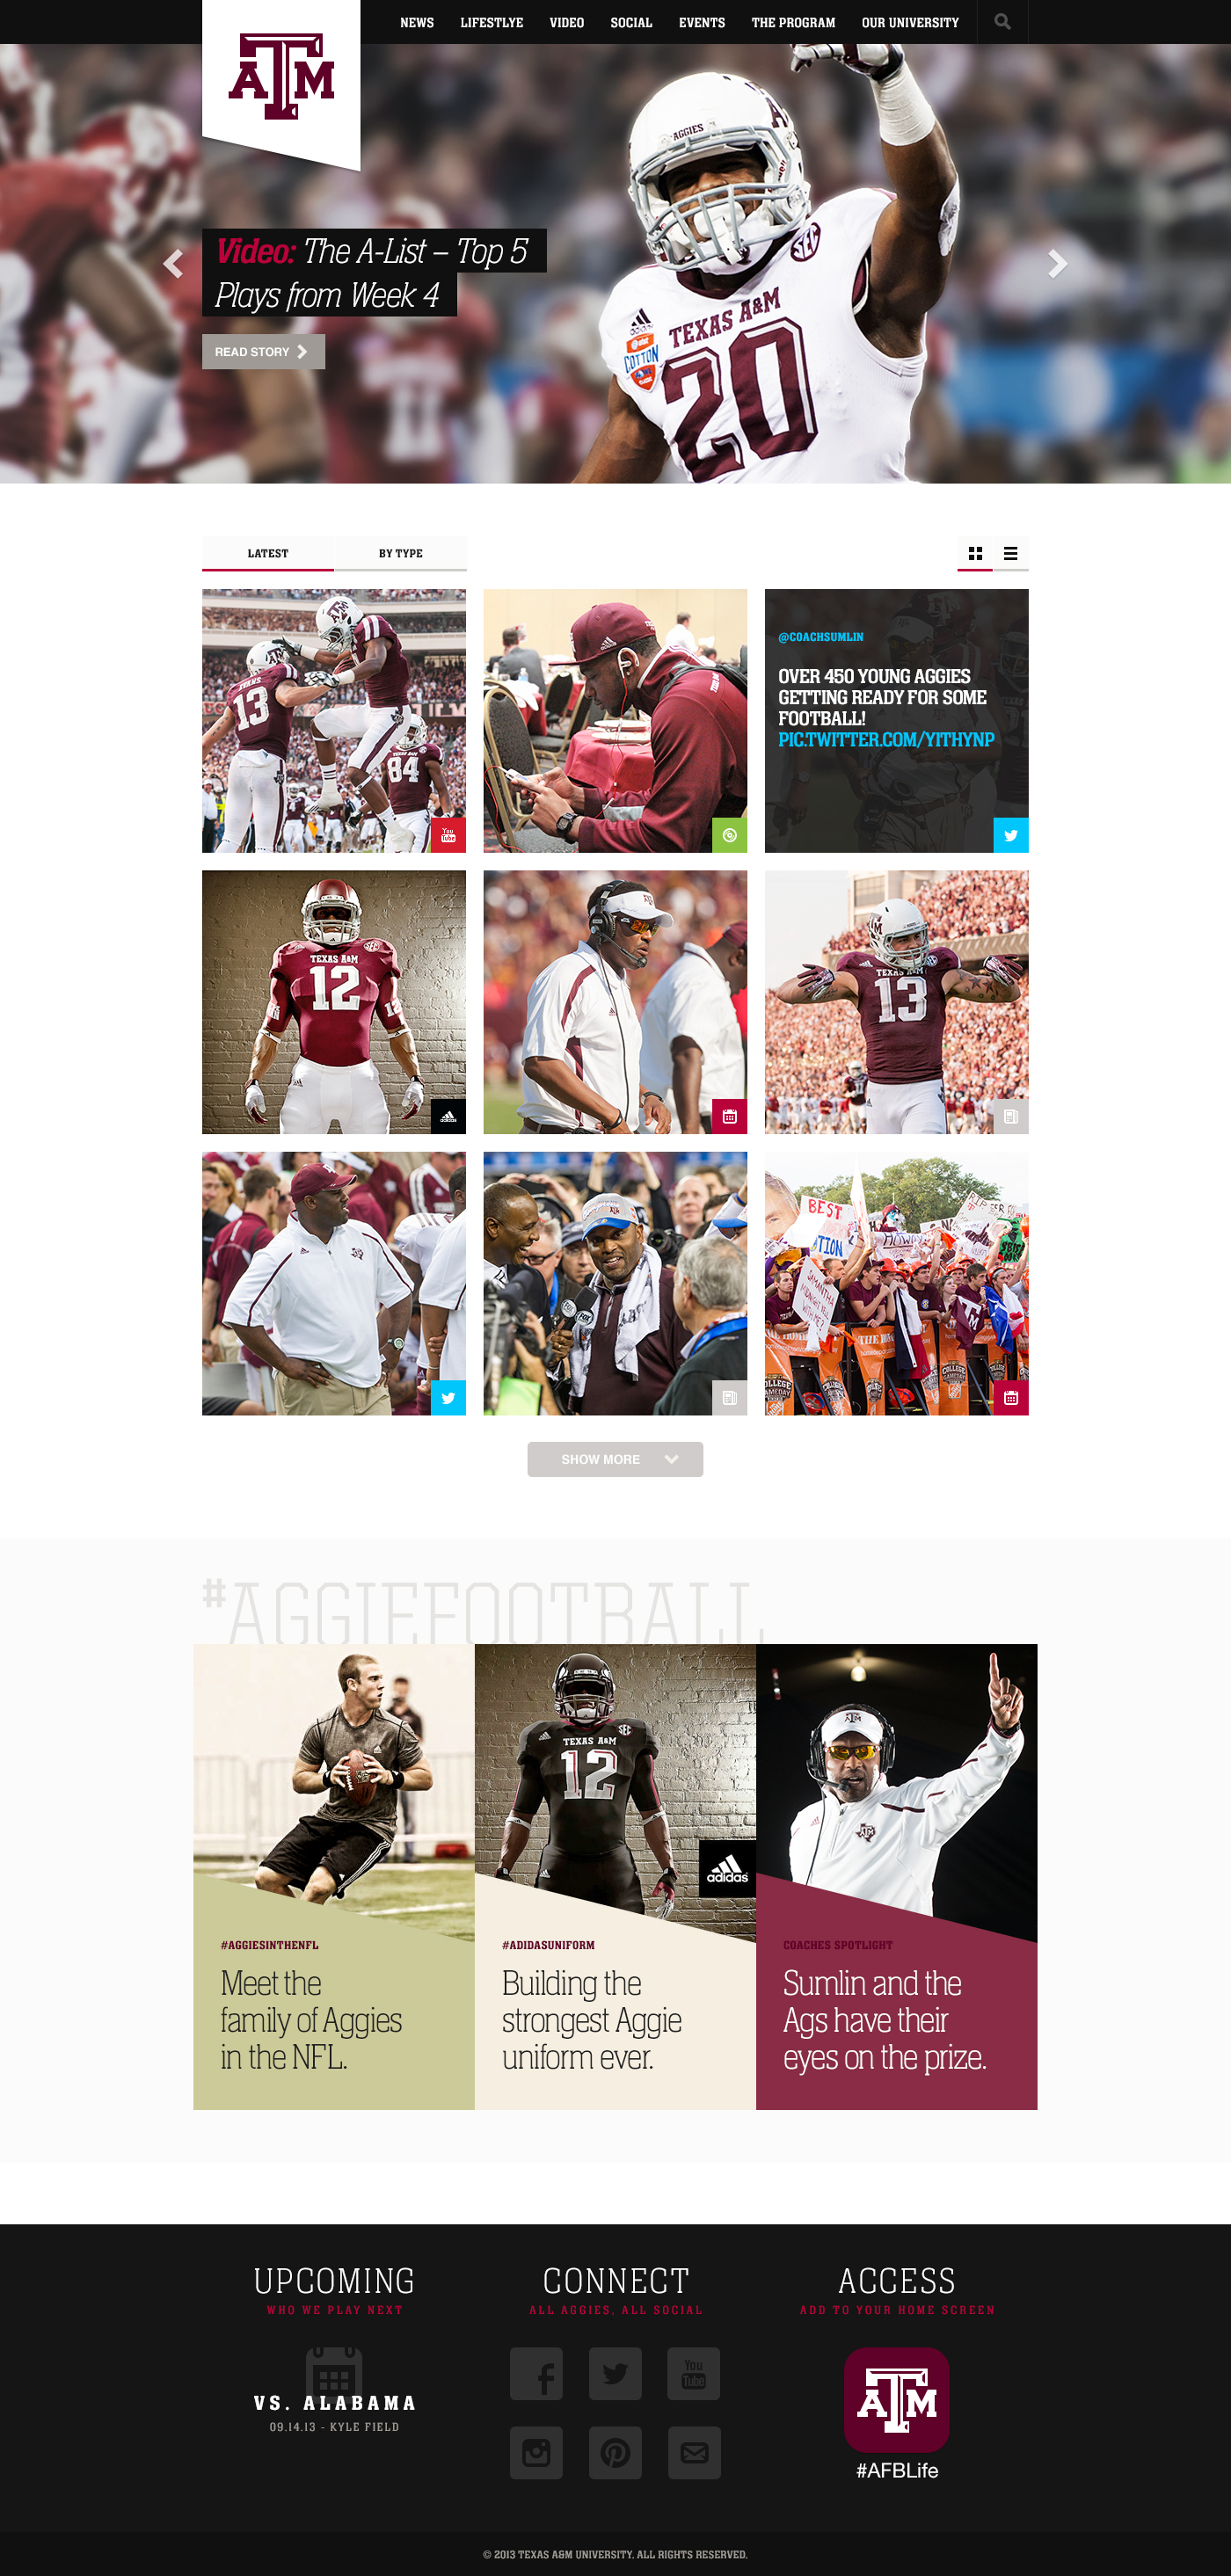 "Texas A&M Coach Kevin Sumlin said, ""With AggieFBLife, we are able to give an insider's view of our football program and show what it's like to be a football player at Texas A&M through videos, blogs and imagery."""